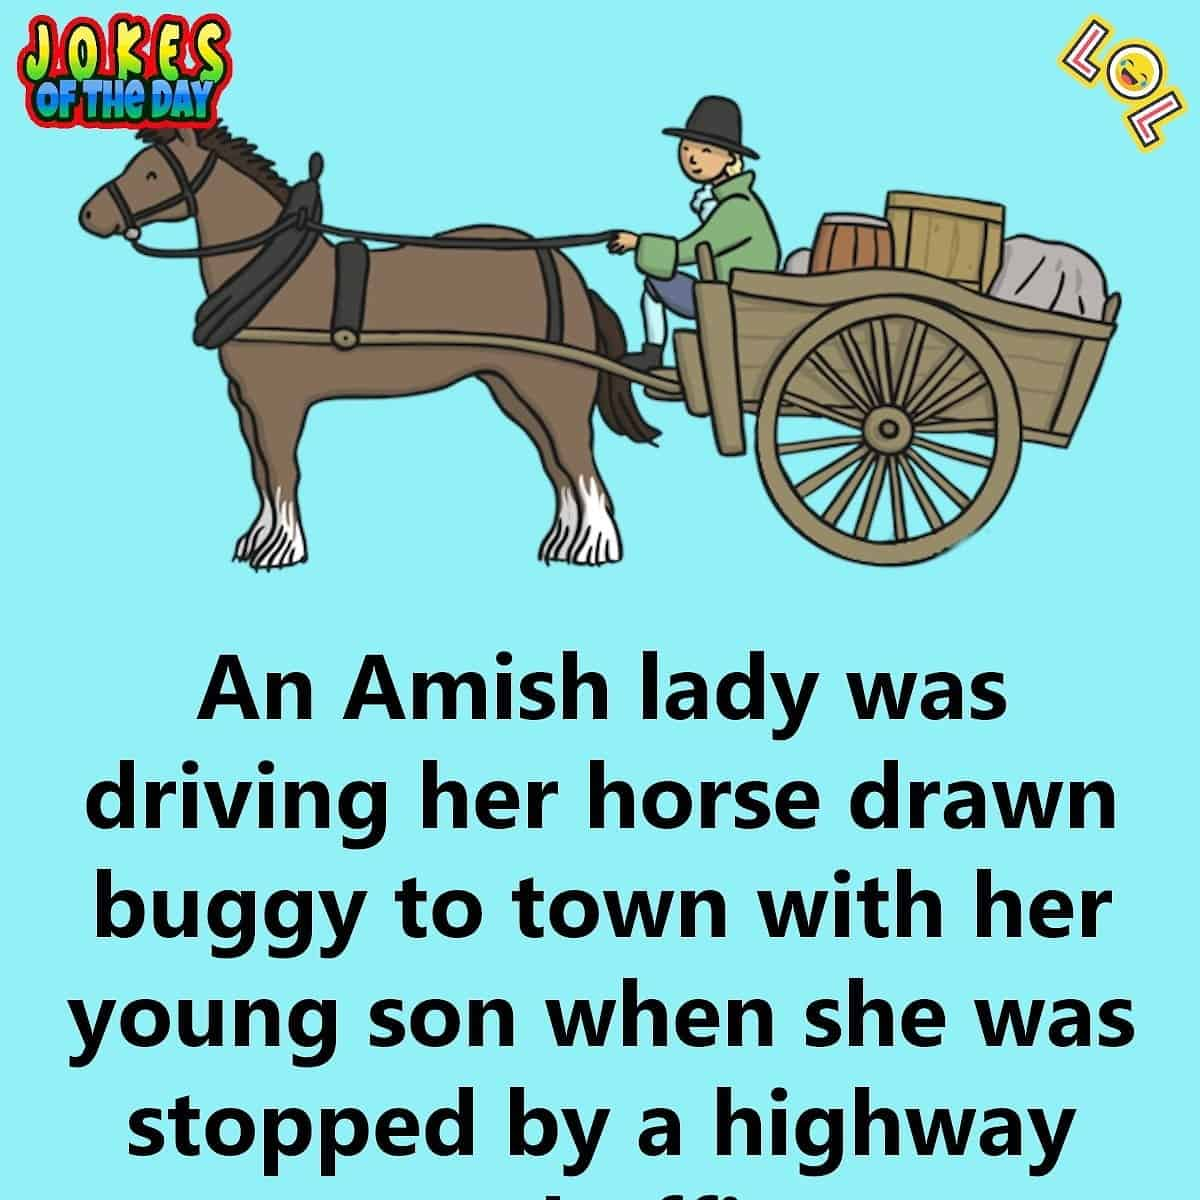 An Amish Lady Driving Her Horse Drawn Buggy Is Pulled Over By The Police